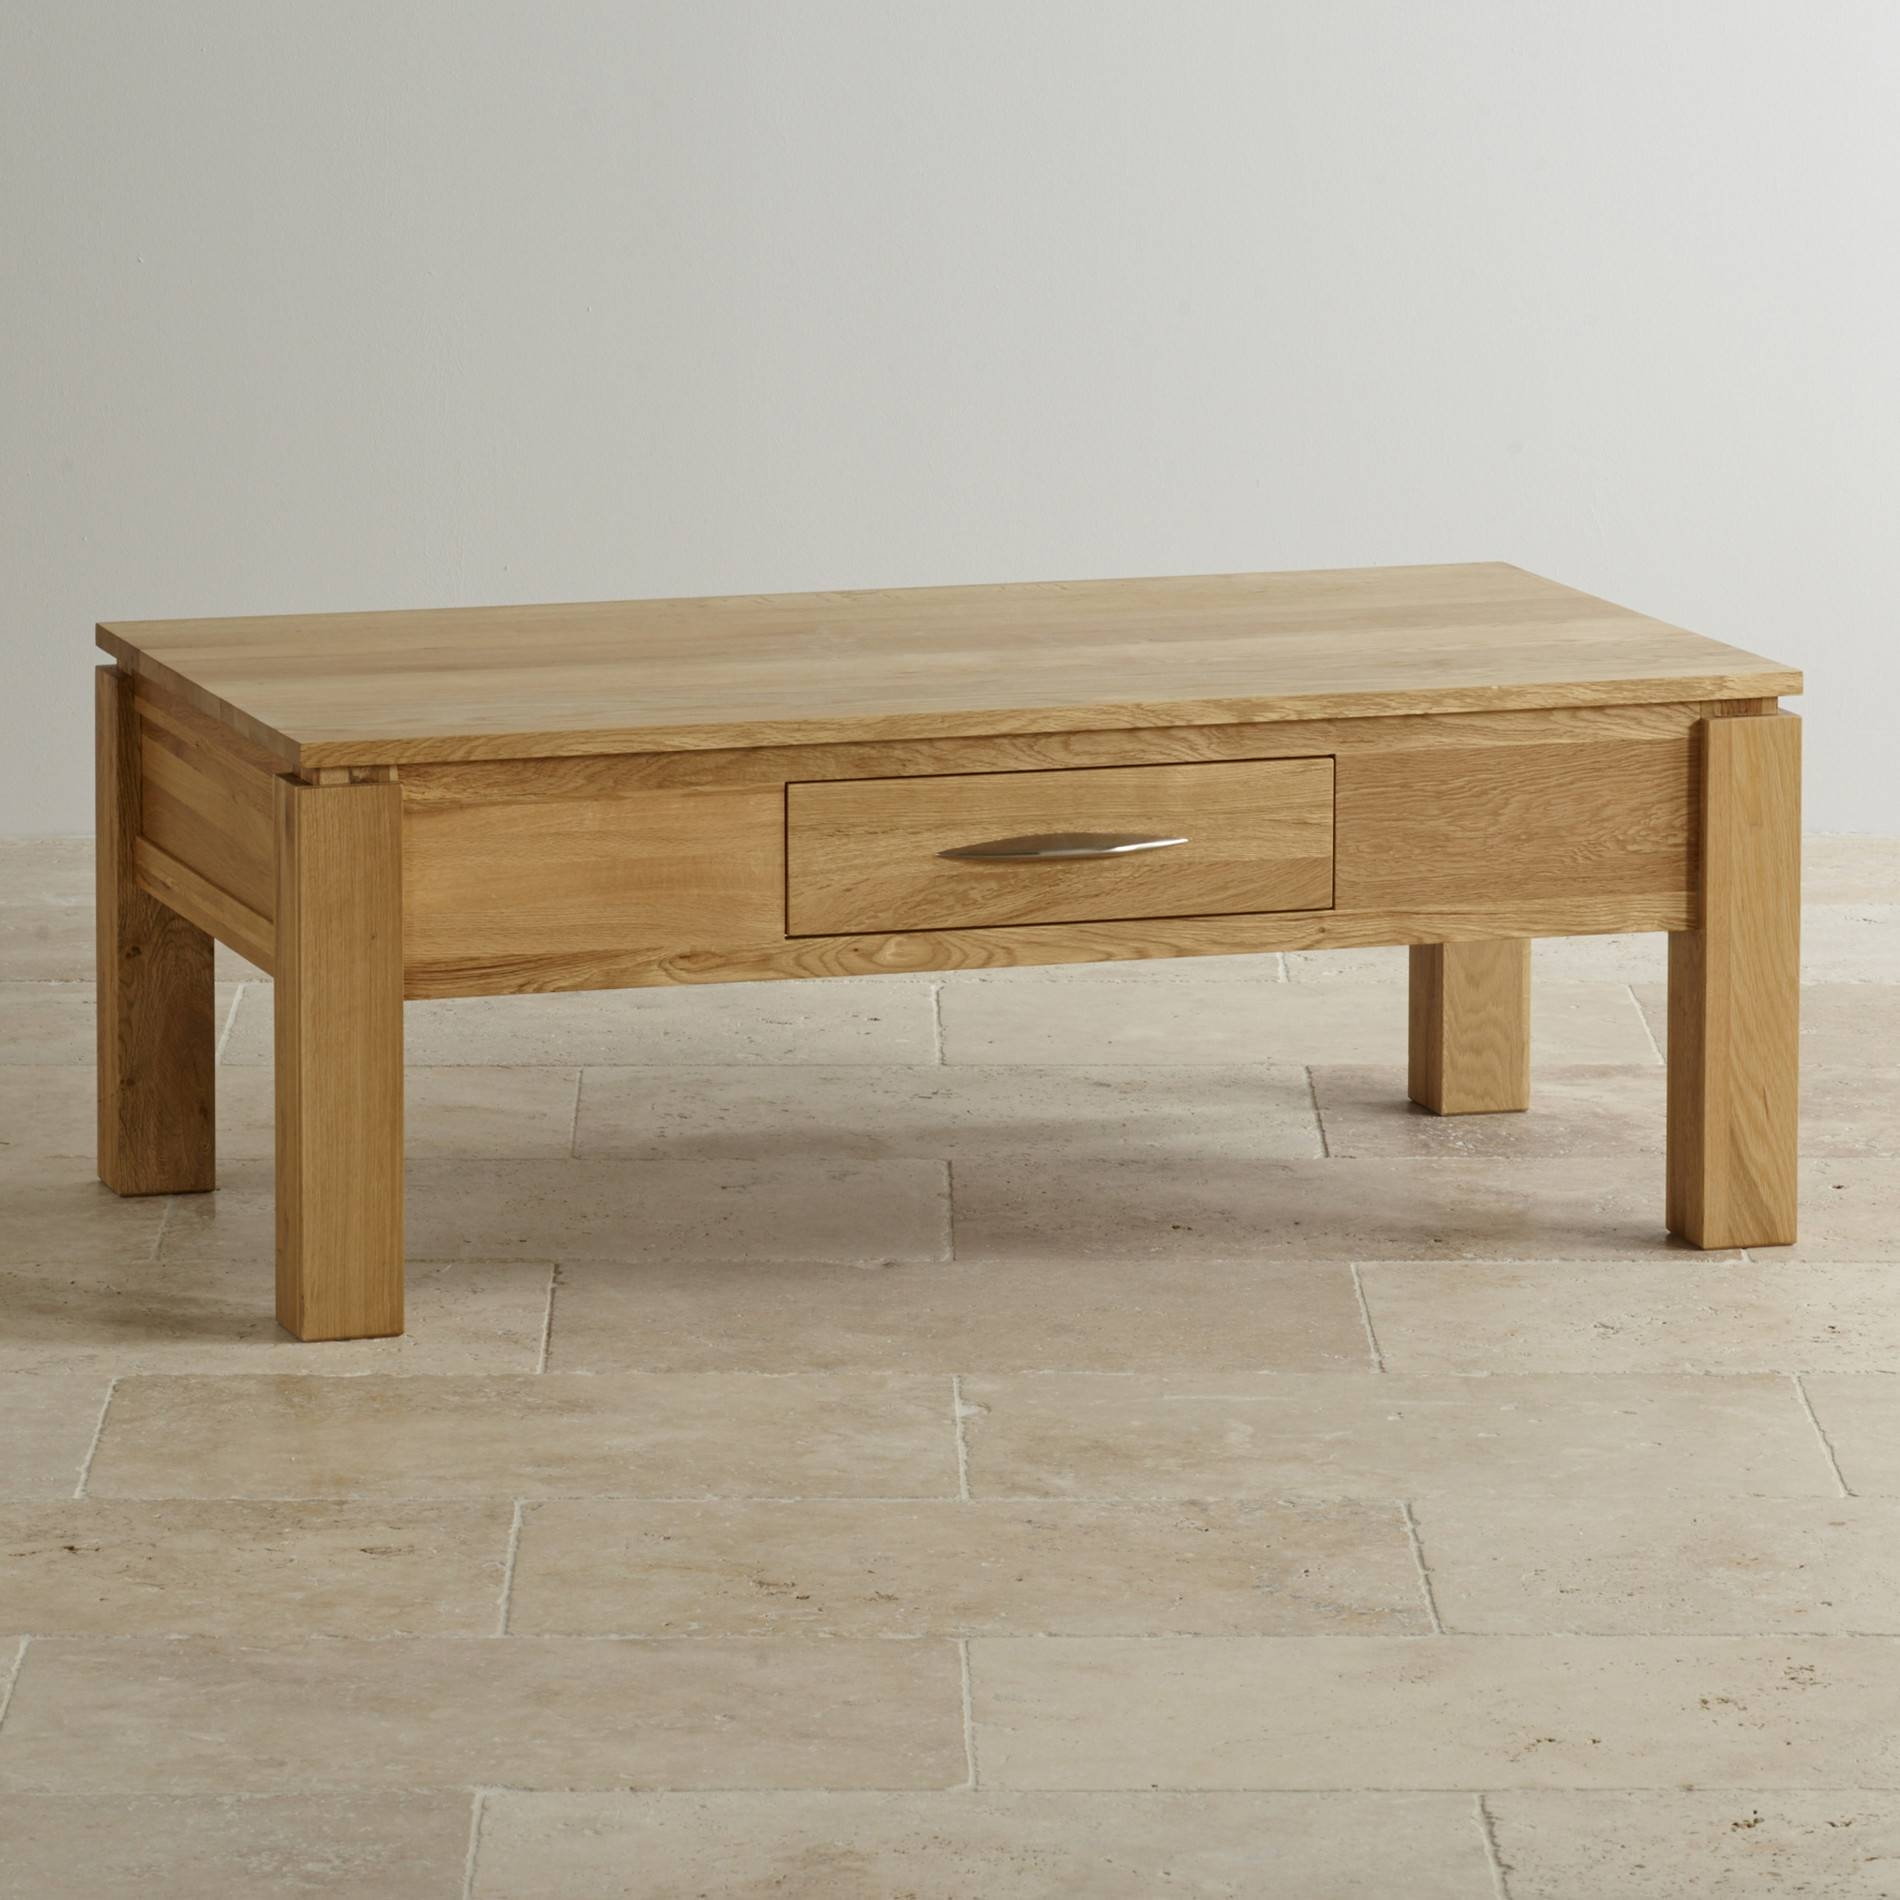 Galway Large Coffee Table In Solid Oak | Oak Furniture Land within Large Solid Wood Coffee Tables (Image 7 of 15)